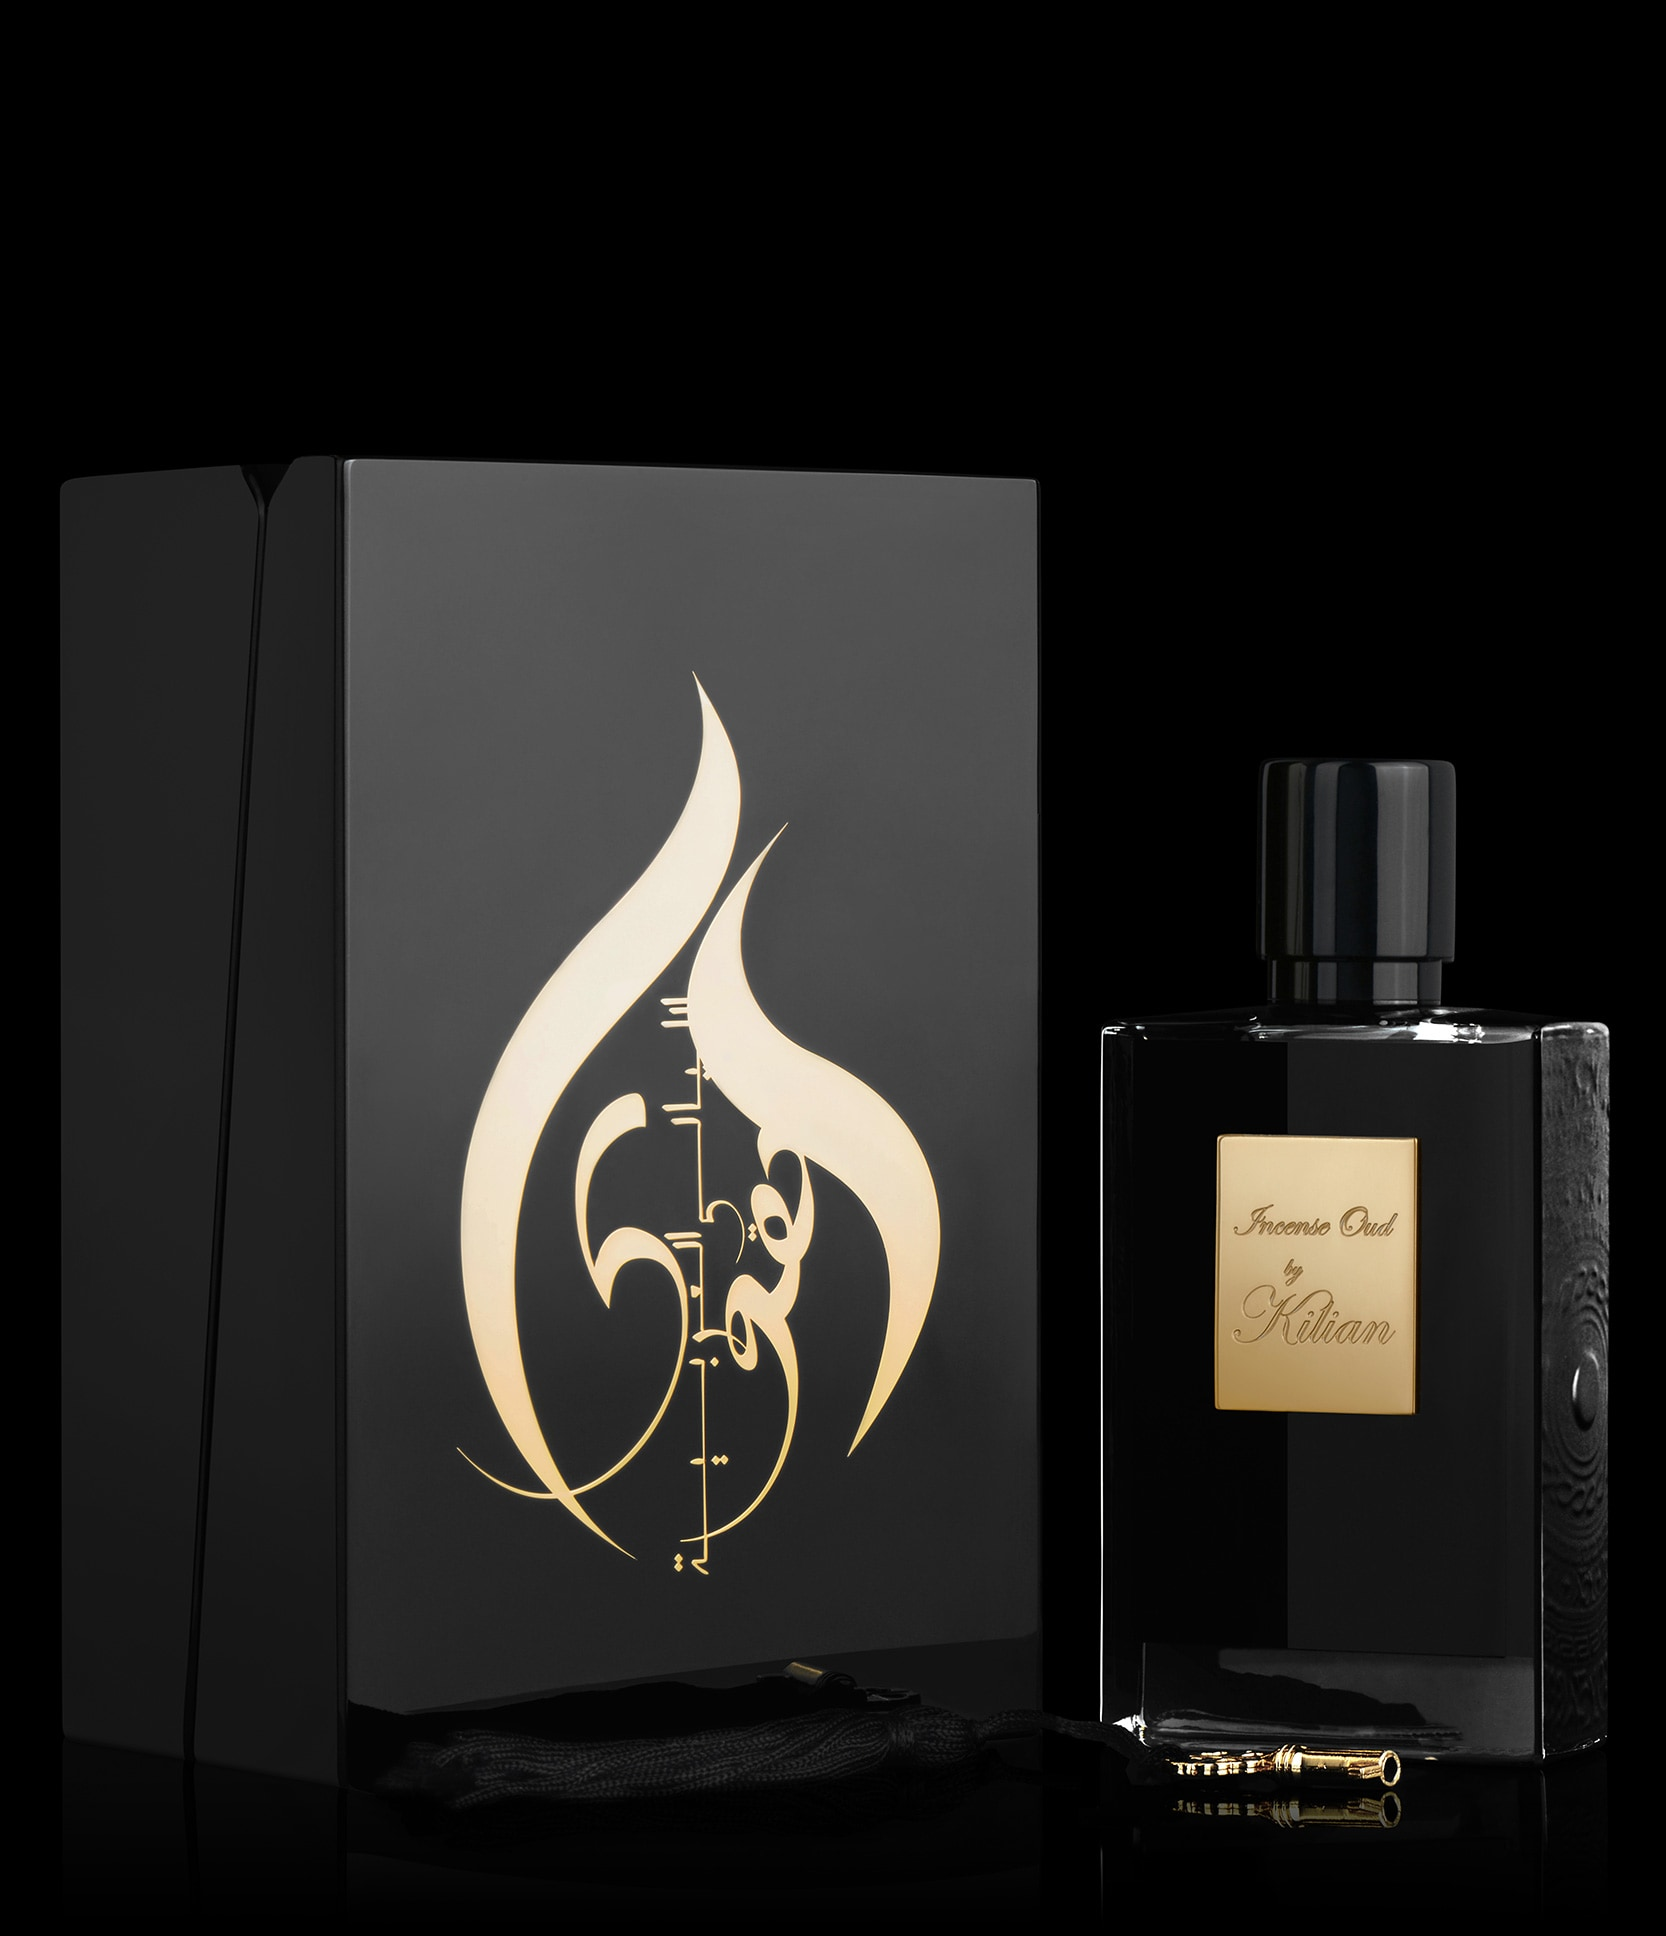 Incense Oud